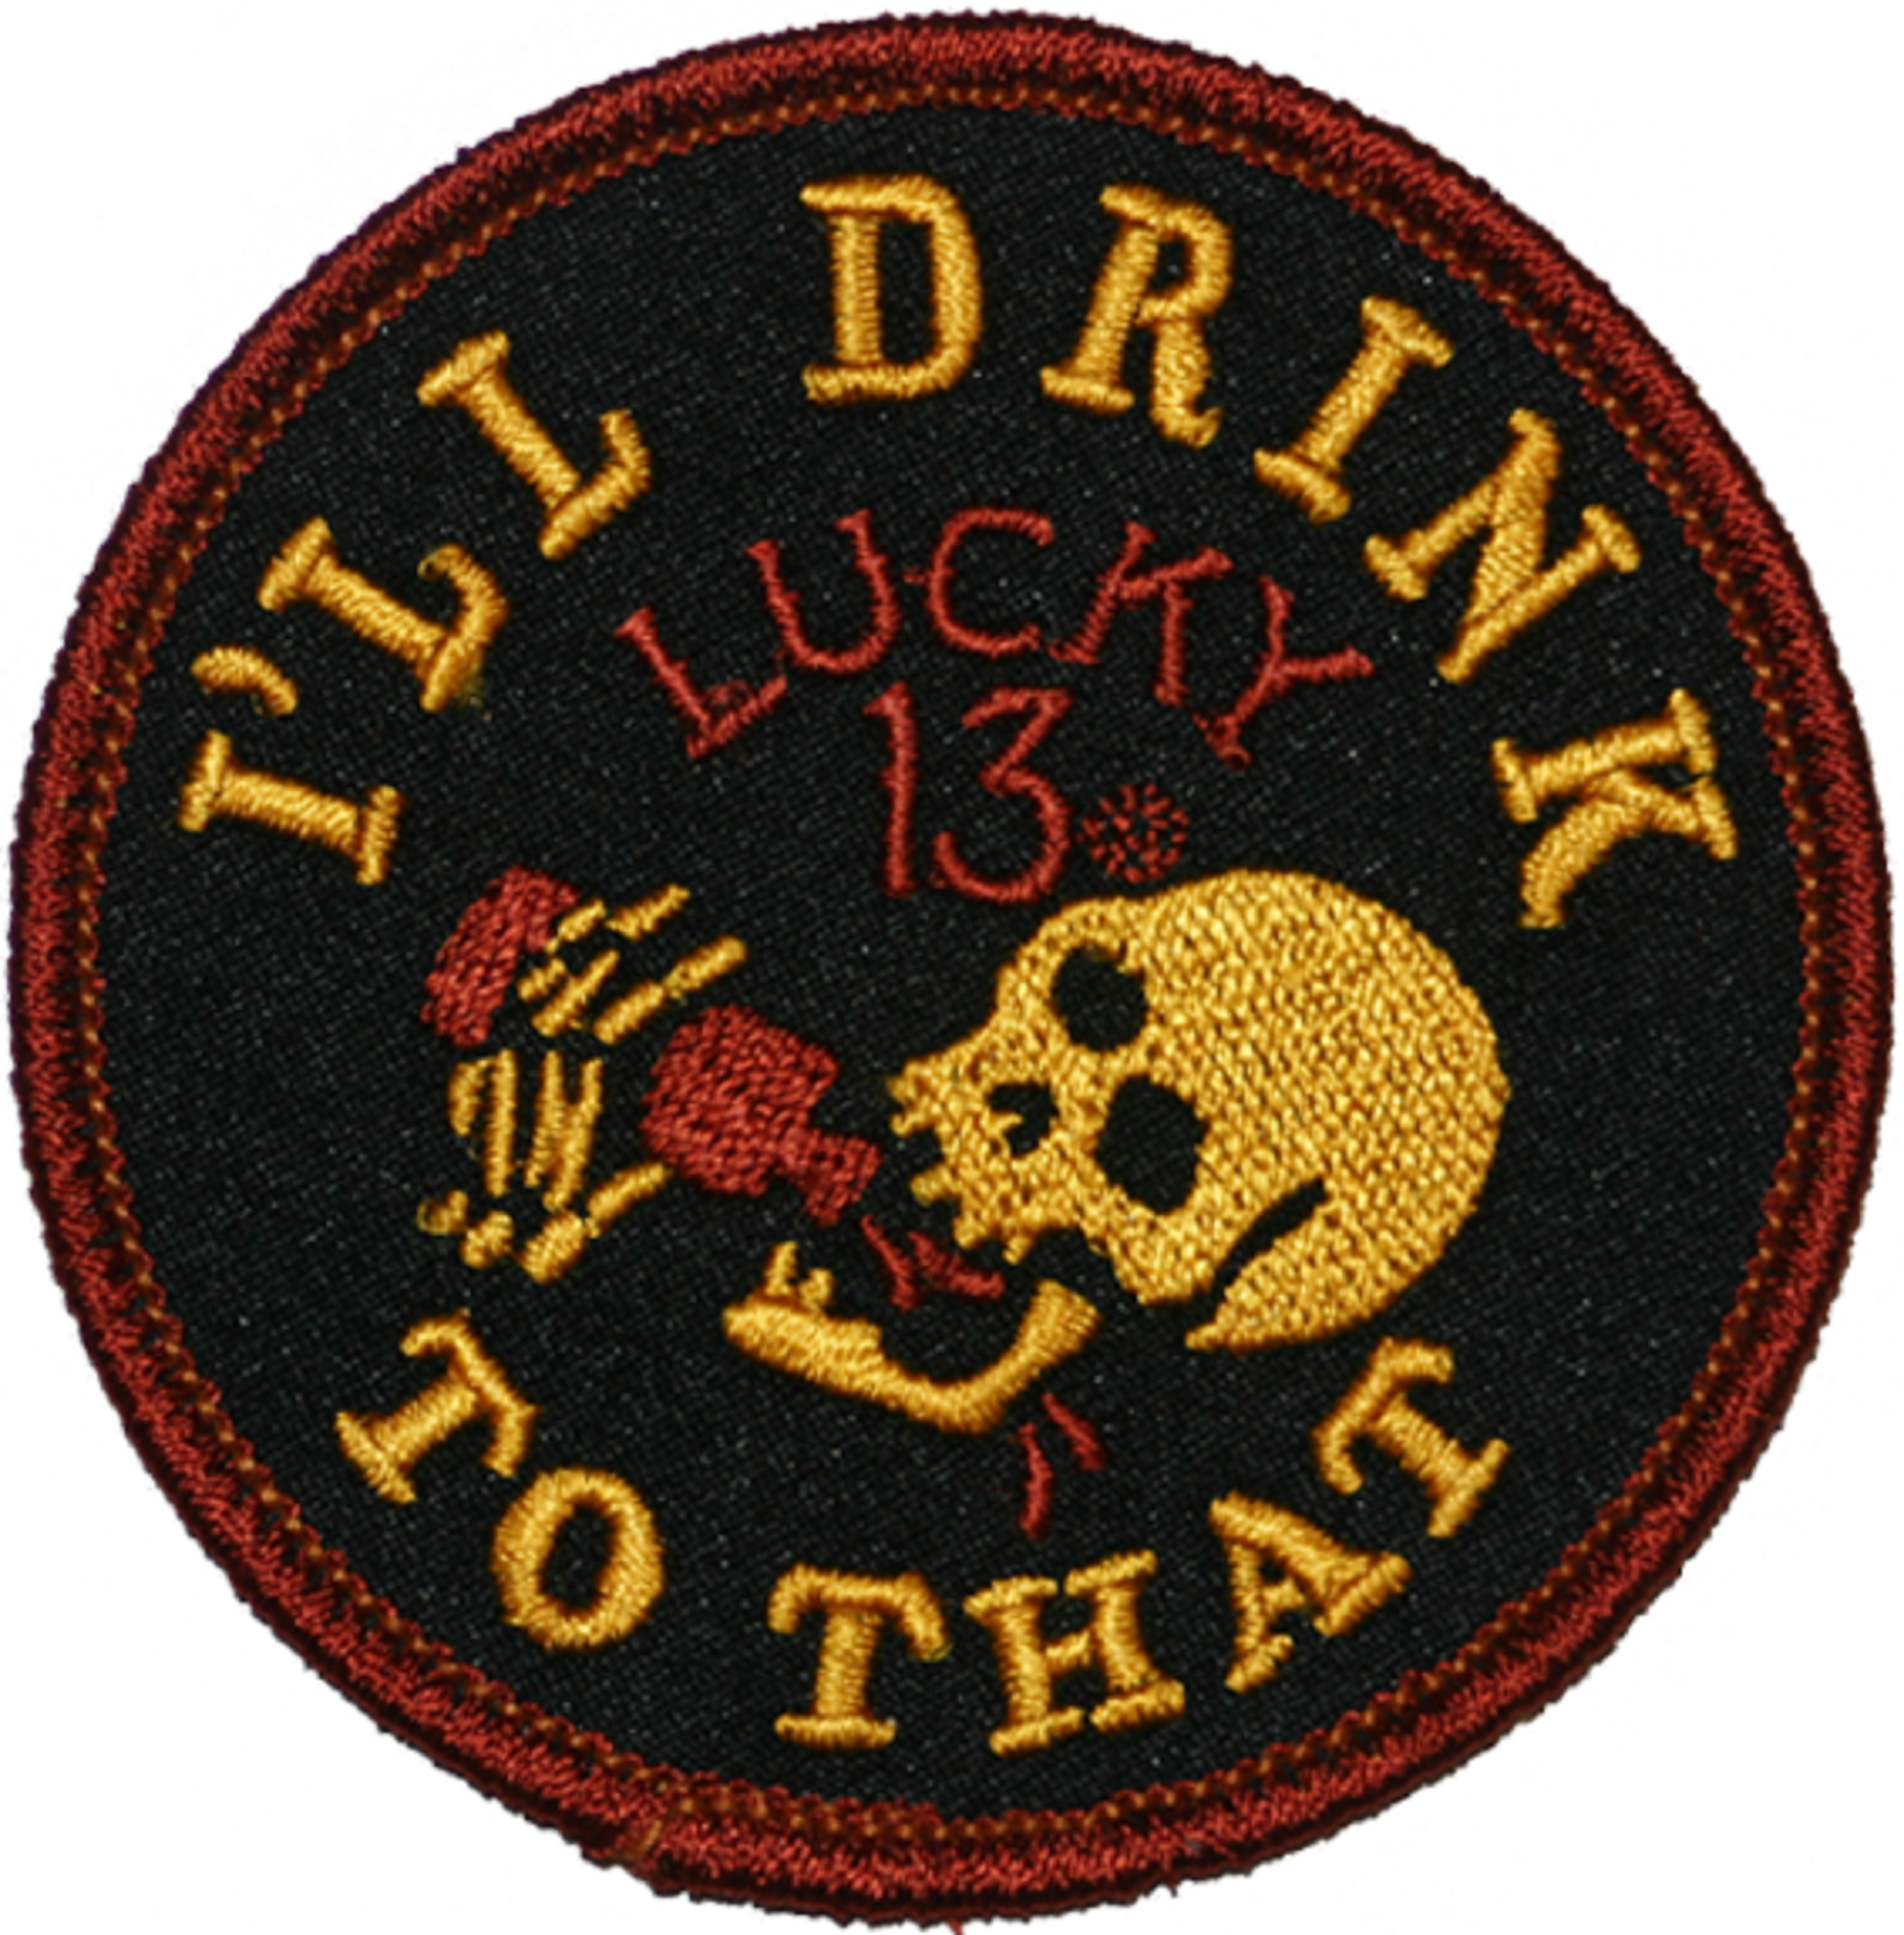 The DRINK TO THAT Patch **NEW**